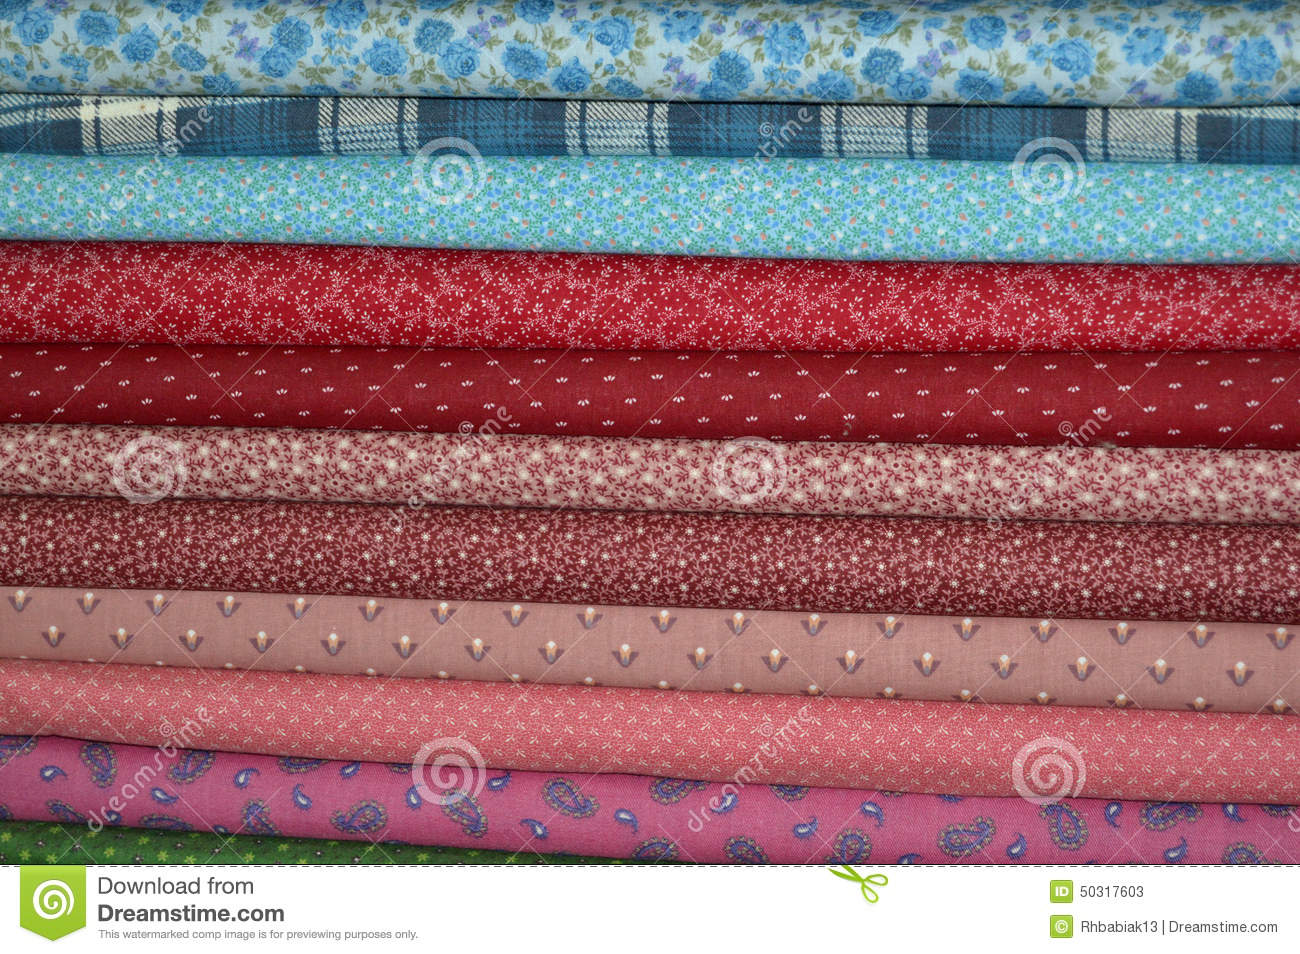 Quilting Fabric Stock Photo - Image: 50317603